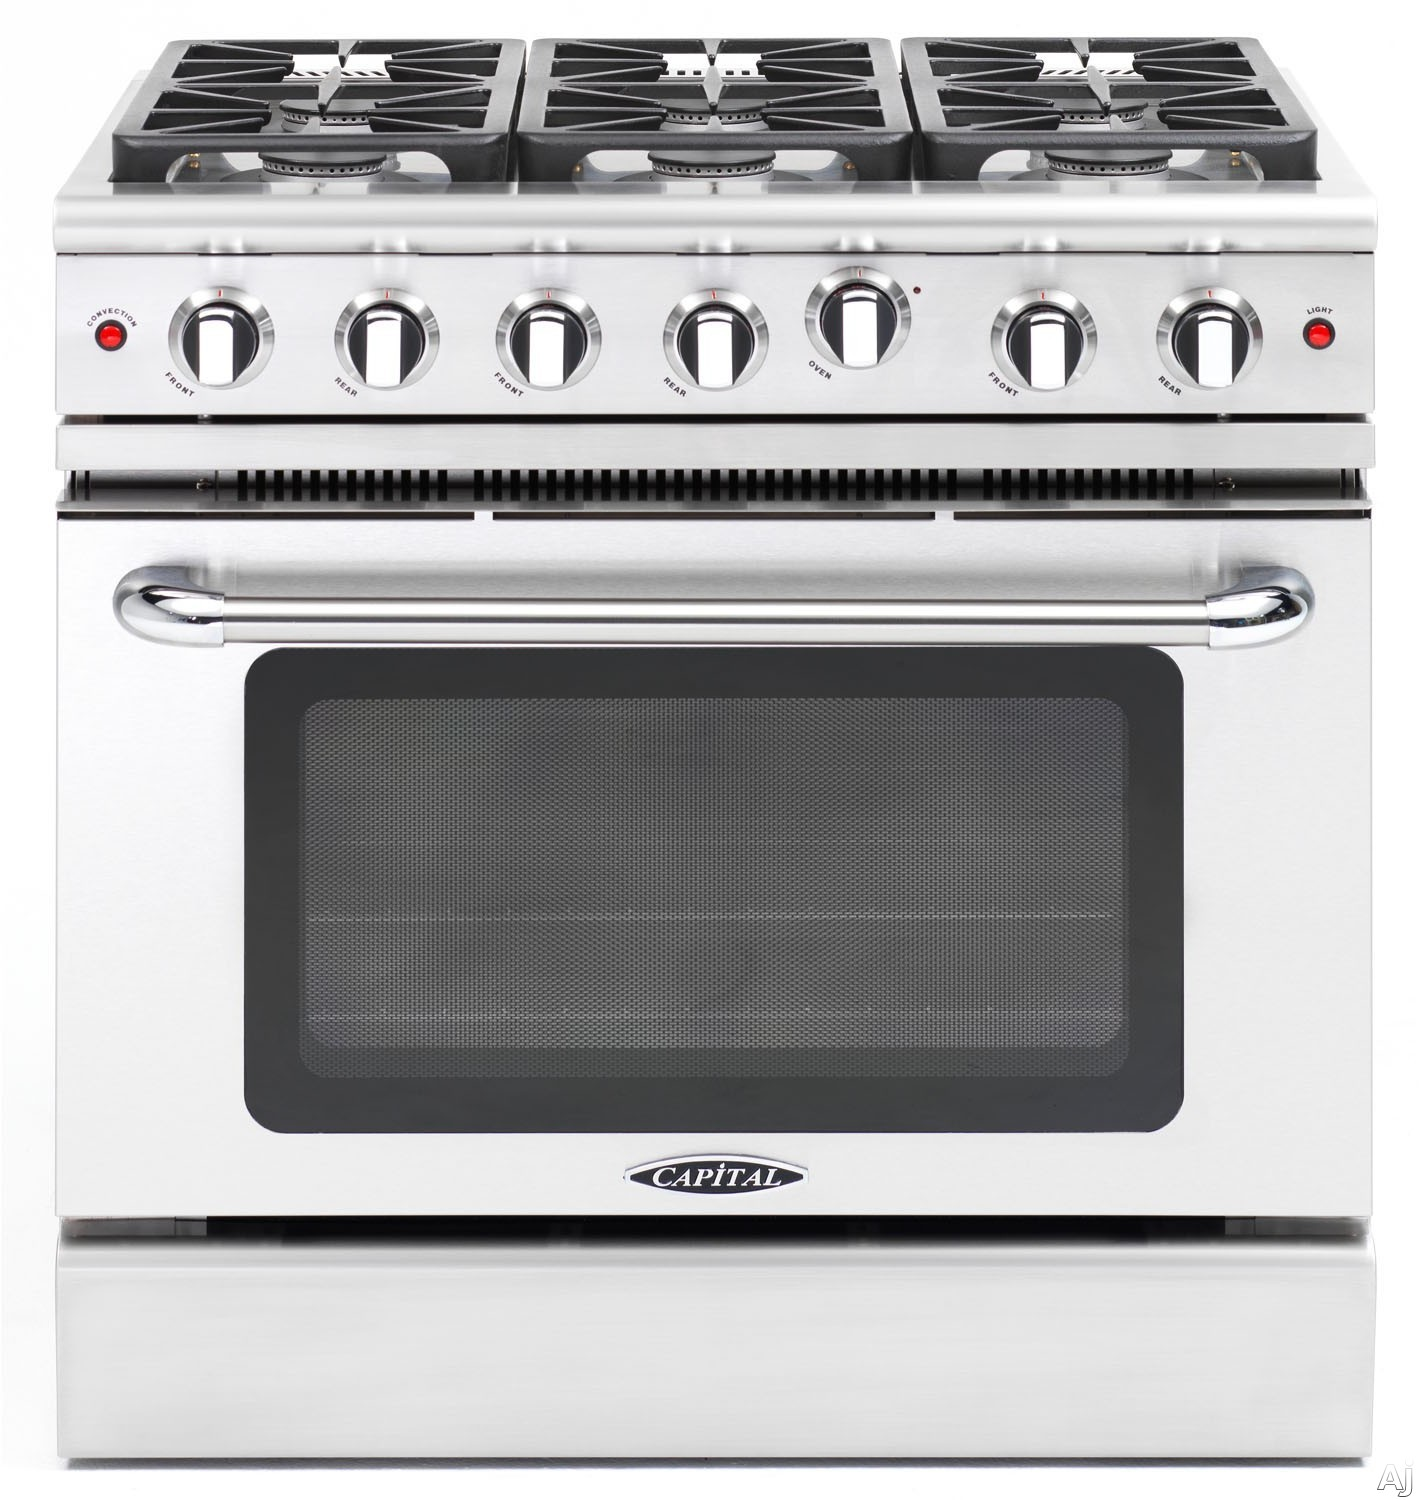 Capital Precision Series MCR366L 36 Inch Pro-Style Gas Range with 6 Sealed Burners, Convection Oven, Infrared Broil Burner, Interior Oven Light, Continuous Grates and 4.9 cu. ft. Oven: Liquid Propane